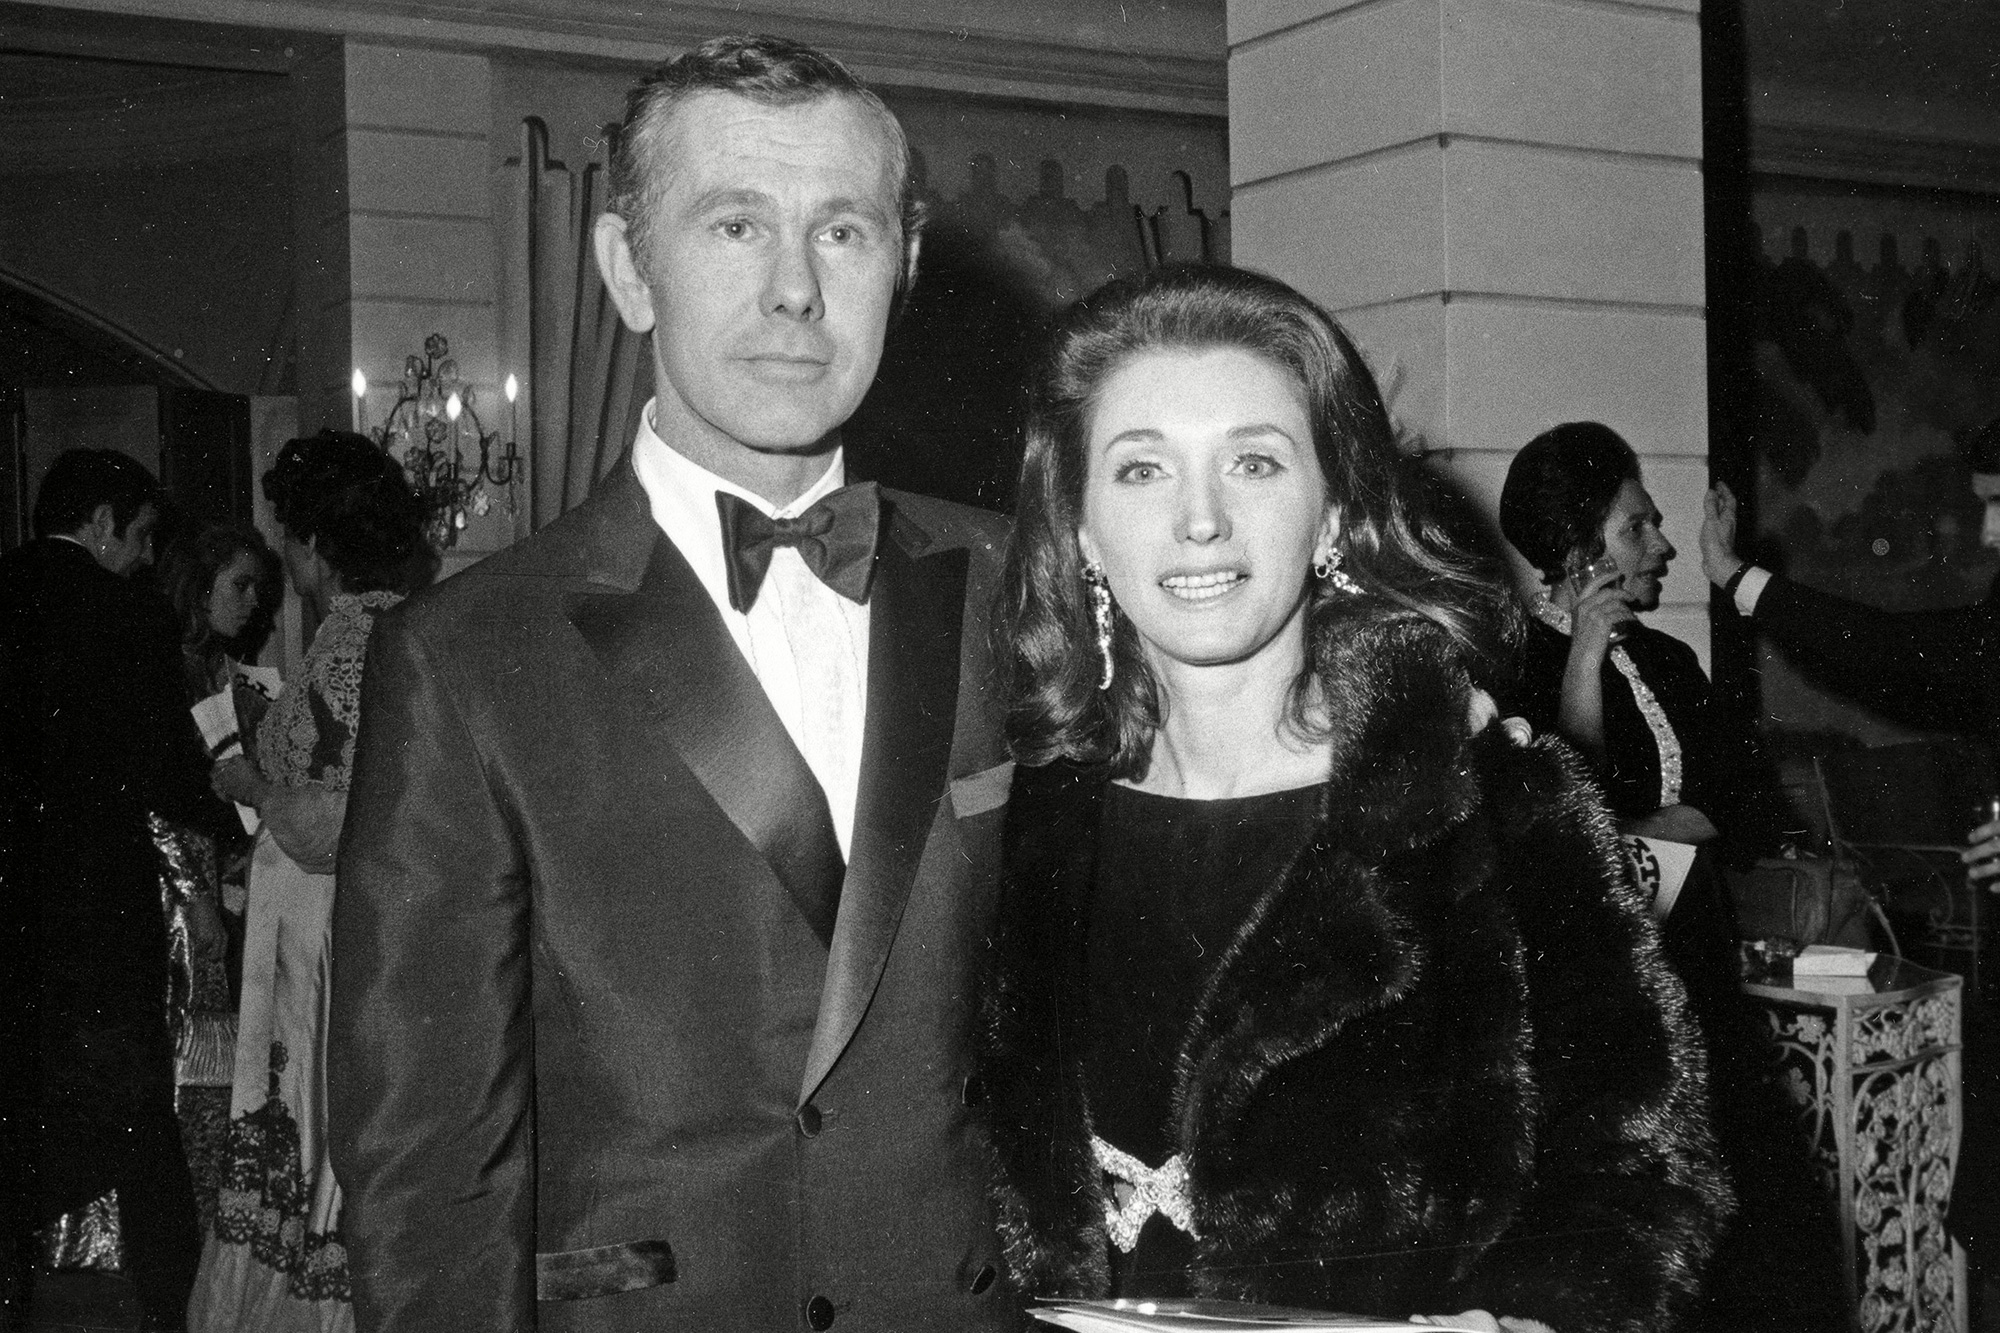 """Johnny Carson, Joanne Carson, Joanne Copeland Comedian Johnny Carson and his wife Joanne Carson attend a party in the Grand Ballroom of New York's Hotel Pierre following the opening of """"Hello Dolly."""" Their marriage from 1963 to 1972 ended in divorce. Joanne Carson, who later in life became a close confidant of Truman Capote, died at home in Los Angeles, according to the executor of her estate. Johnny Carson, who hosted """"The Tonight Show"""" from 1962 to 1992, died in 2005 Obit Joanne Carson, New York, USA"""